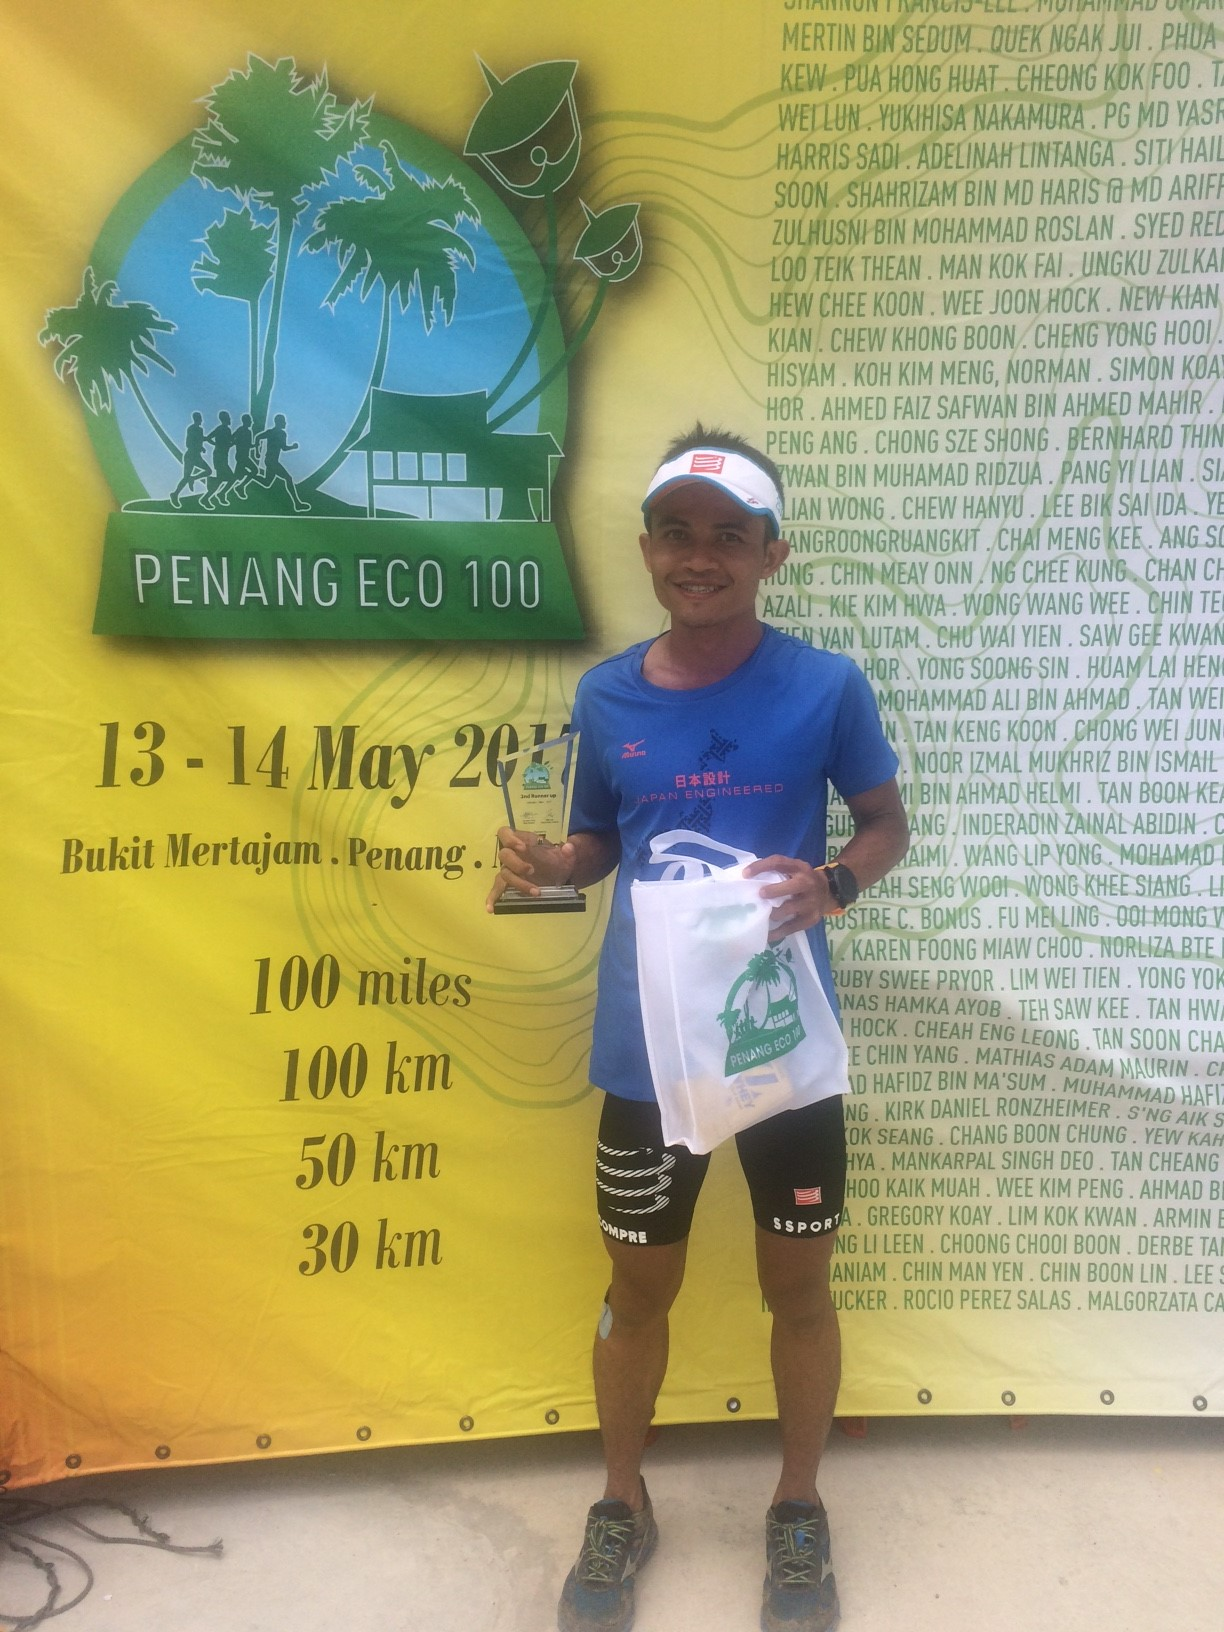 Indonesia's Arief Wismoyono retains his lead in the 2017 ATM Championship ranking with 3rd place in Penang Eco 100 miles